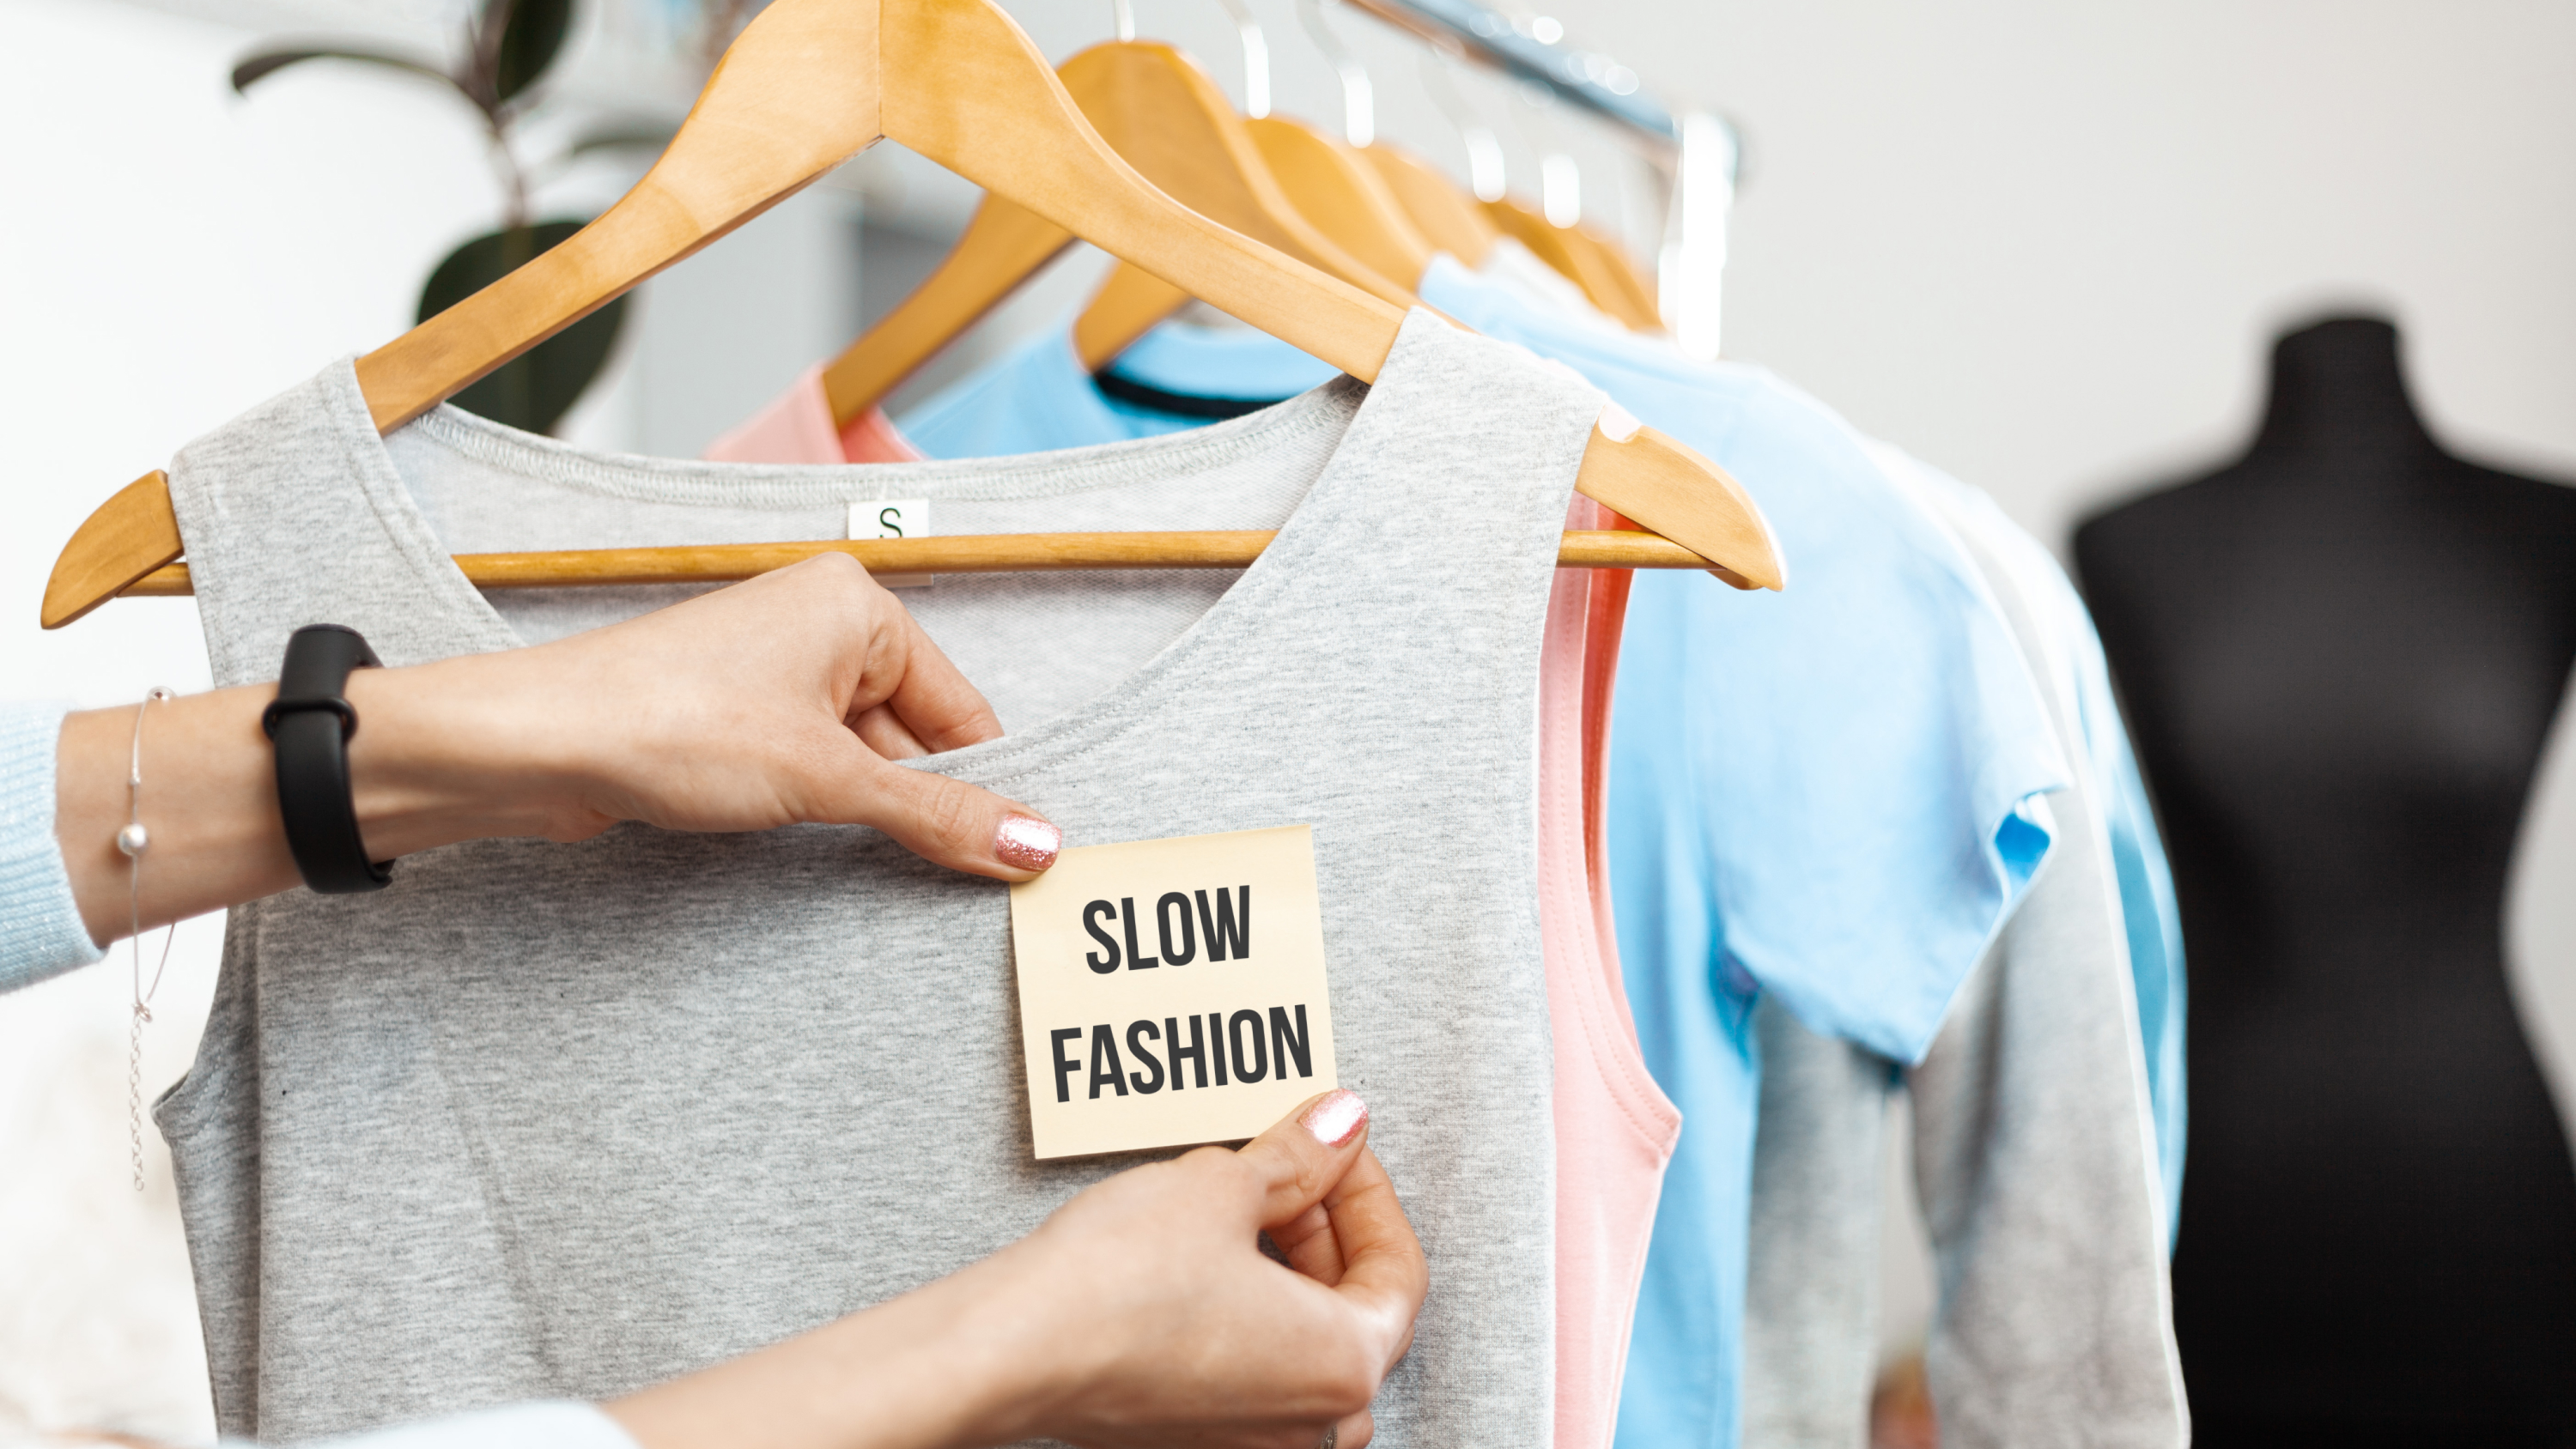 slow fashion as a new trend